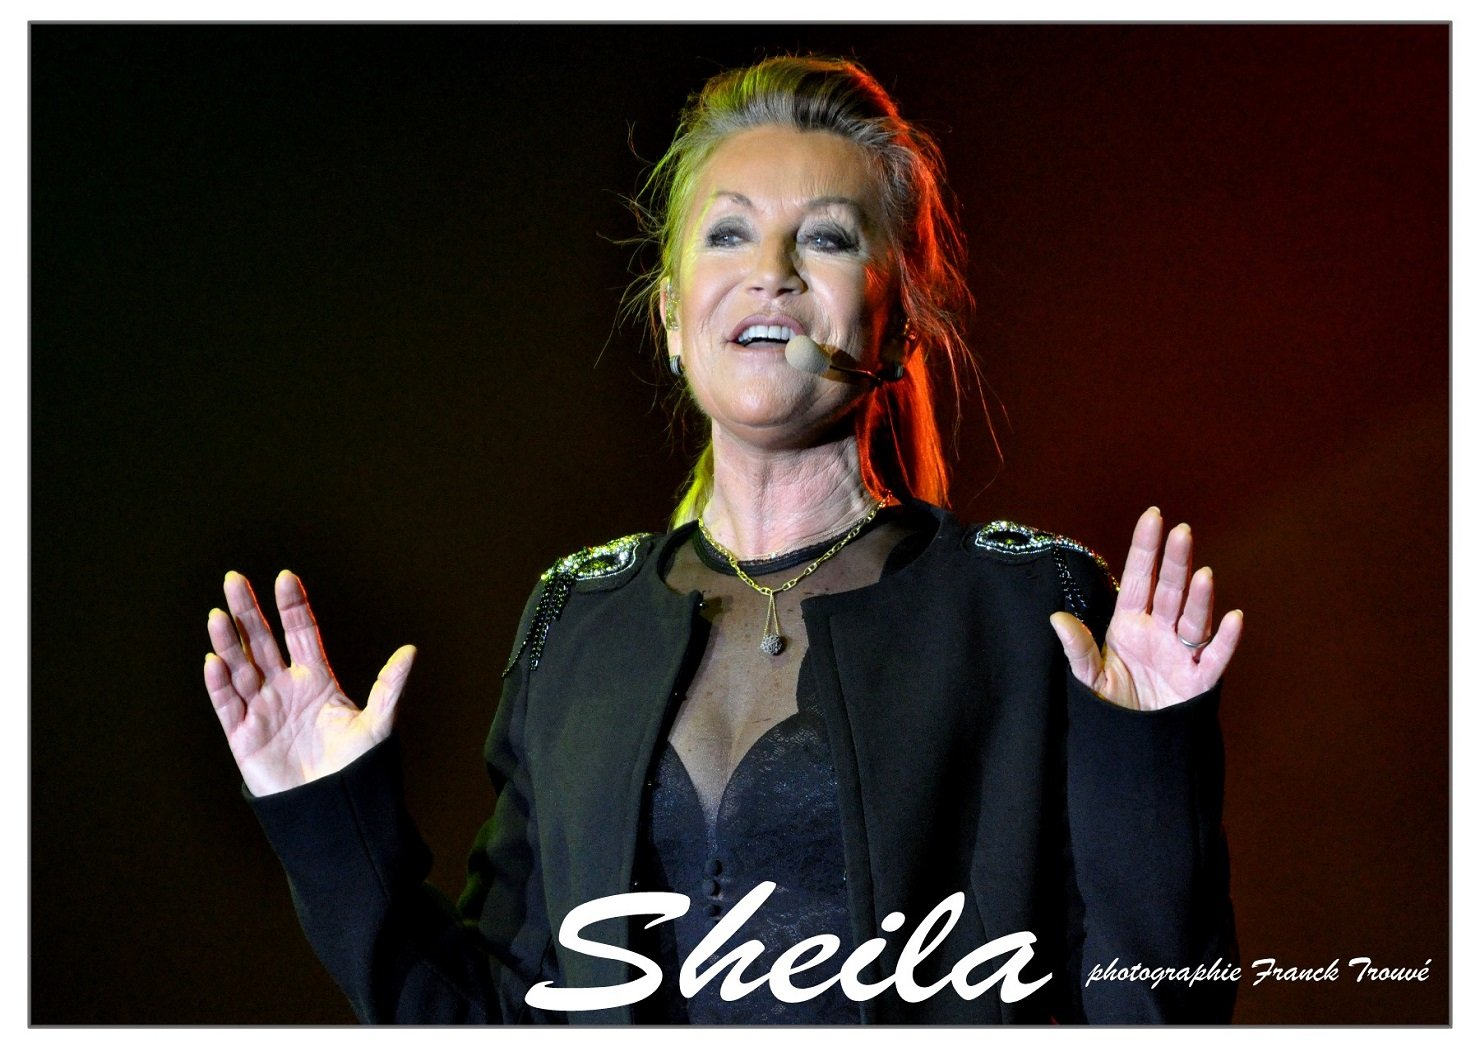 sheila photo franck trouve